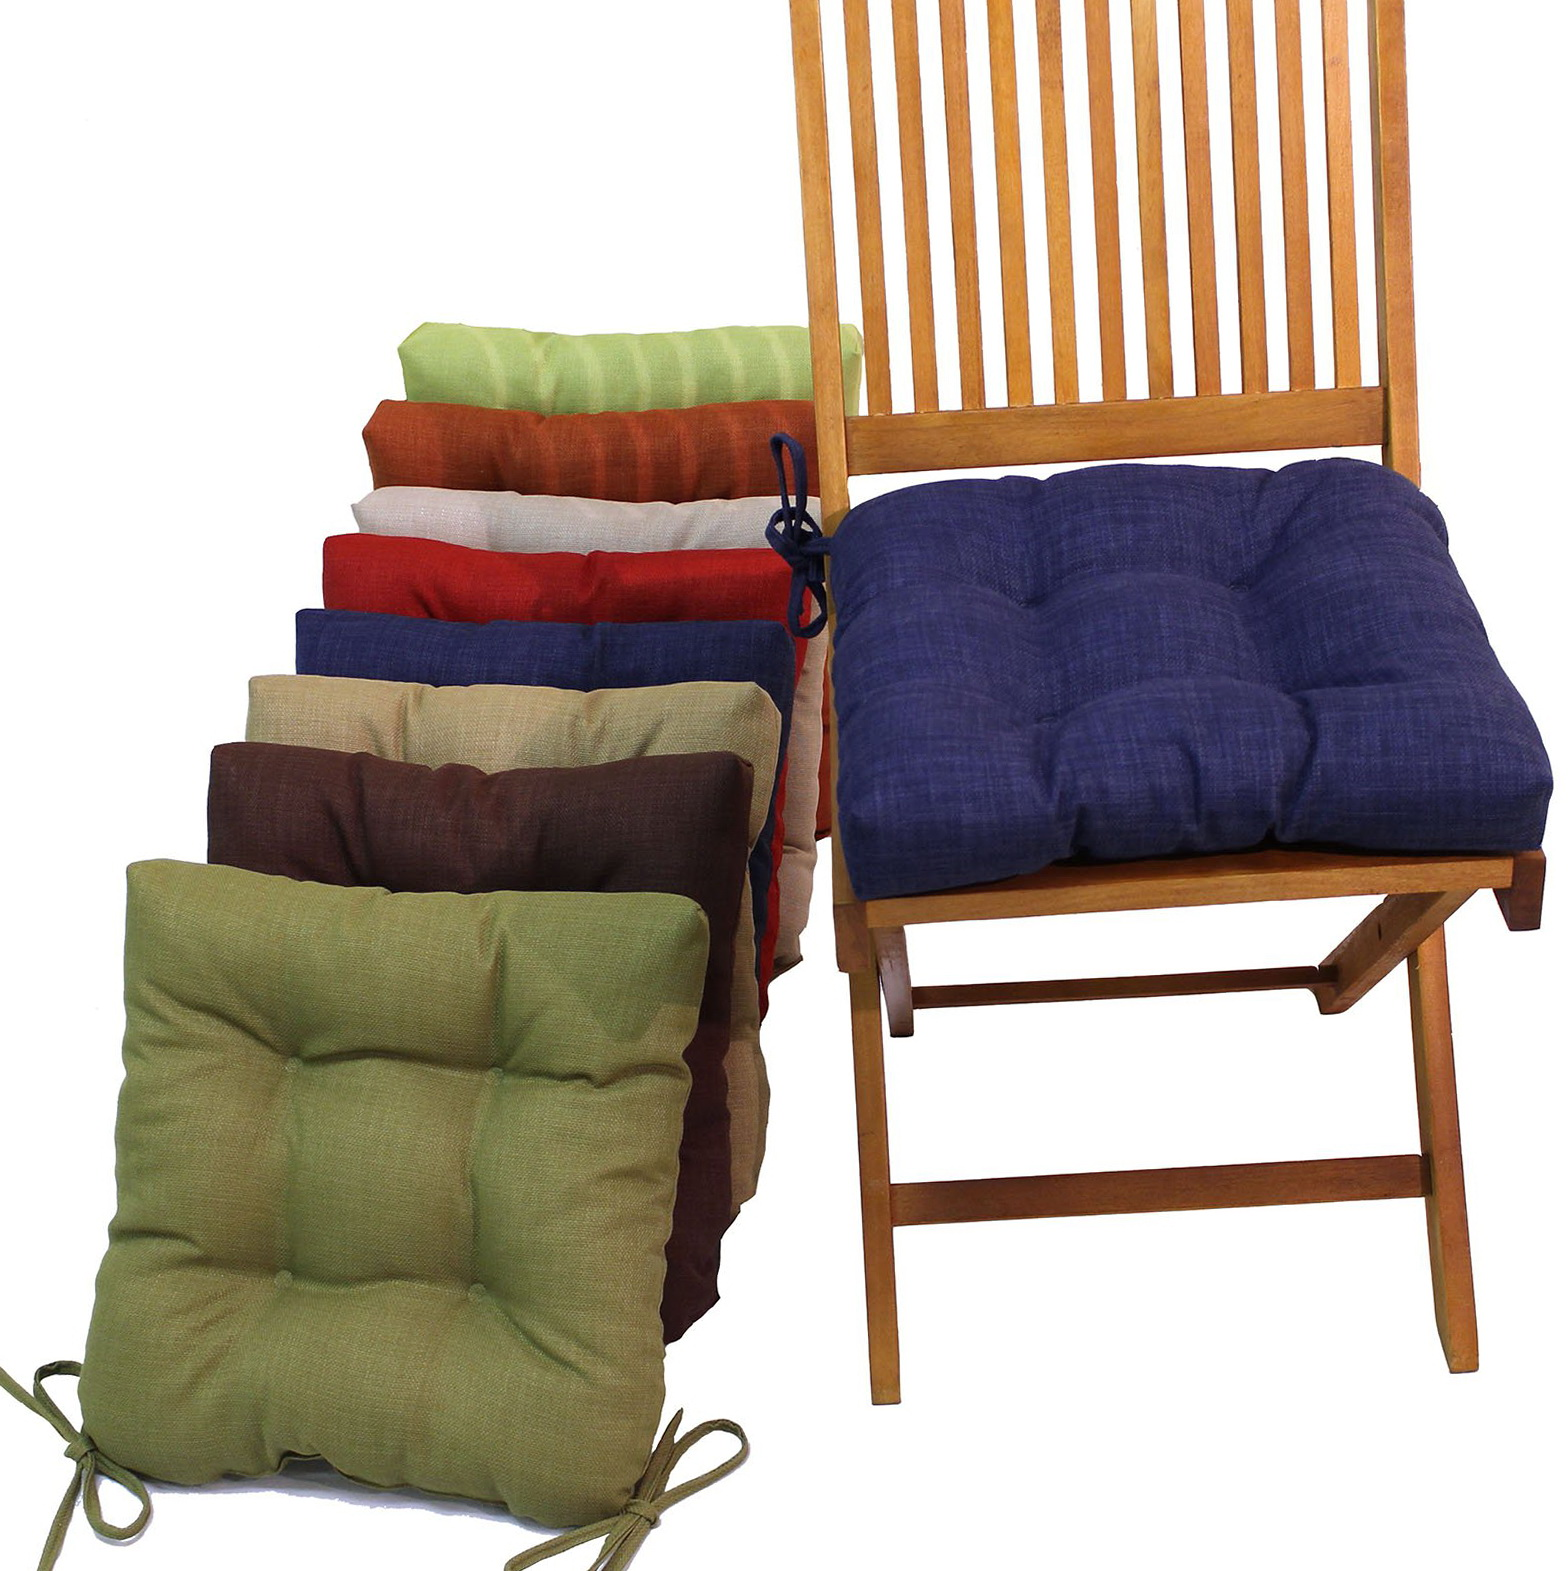 kitchen chair seat cushions with ties home design ideas. Black Bedroom Furniture Sets. Home Design Ideas